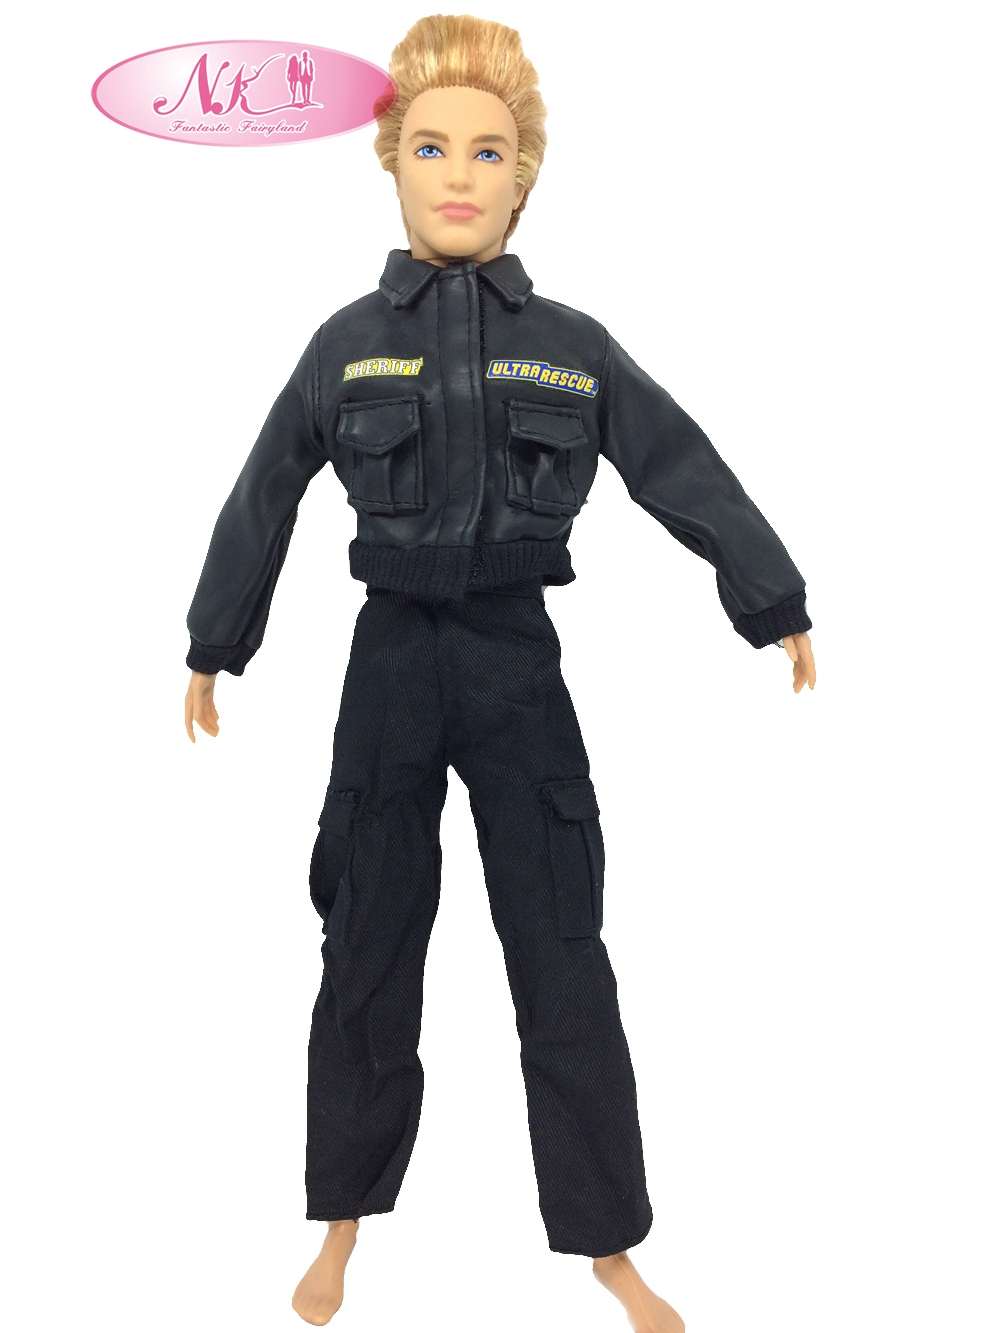 NK Unique Prince Garments Fight Police Uniform Cop Outfit For Barbie Boy Male Ken Doll For Lanard  1/6 Soldier  Greatest Reward 018A